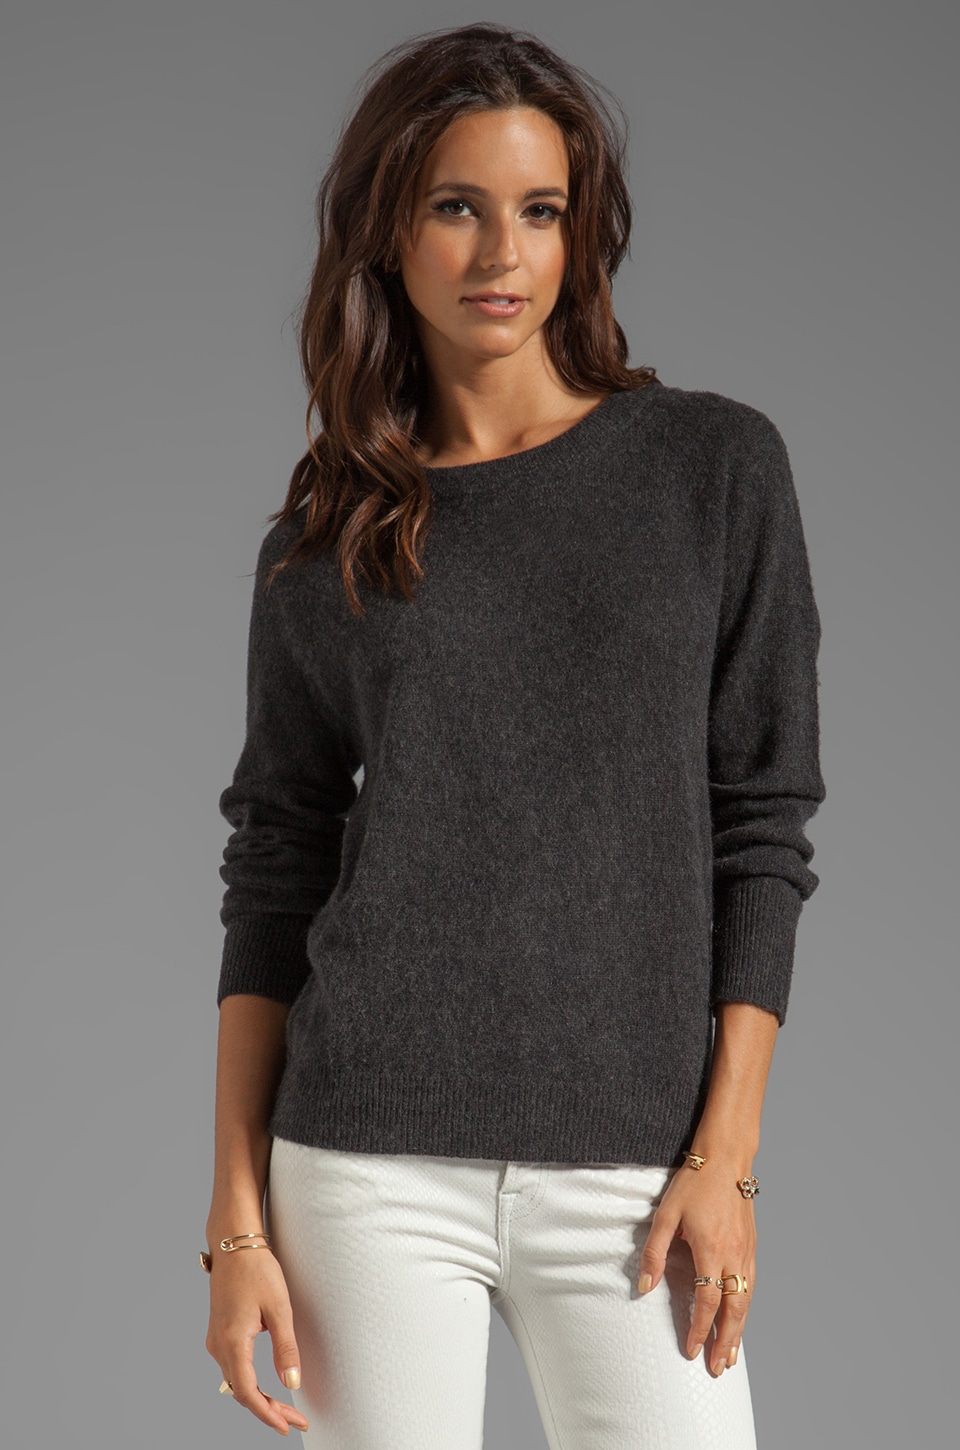 Skaist Taylor Cashmere Sweatshirt in Dark Charcoal